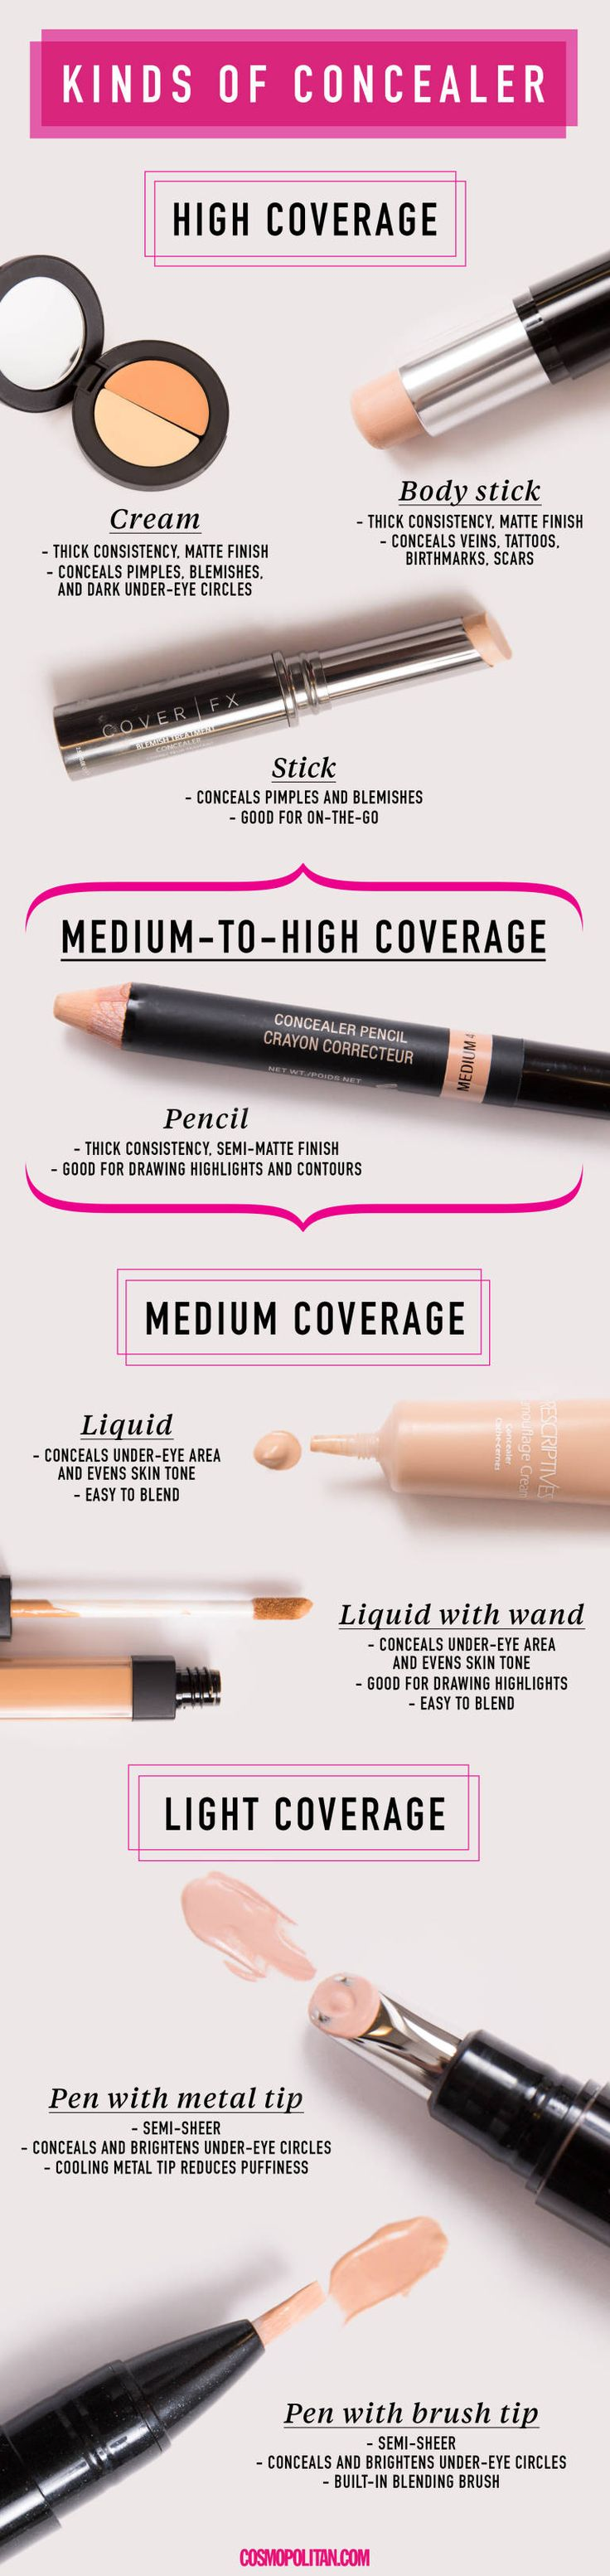 20 Genius Concealer Hacks Every Women Needs to Know